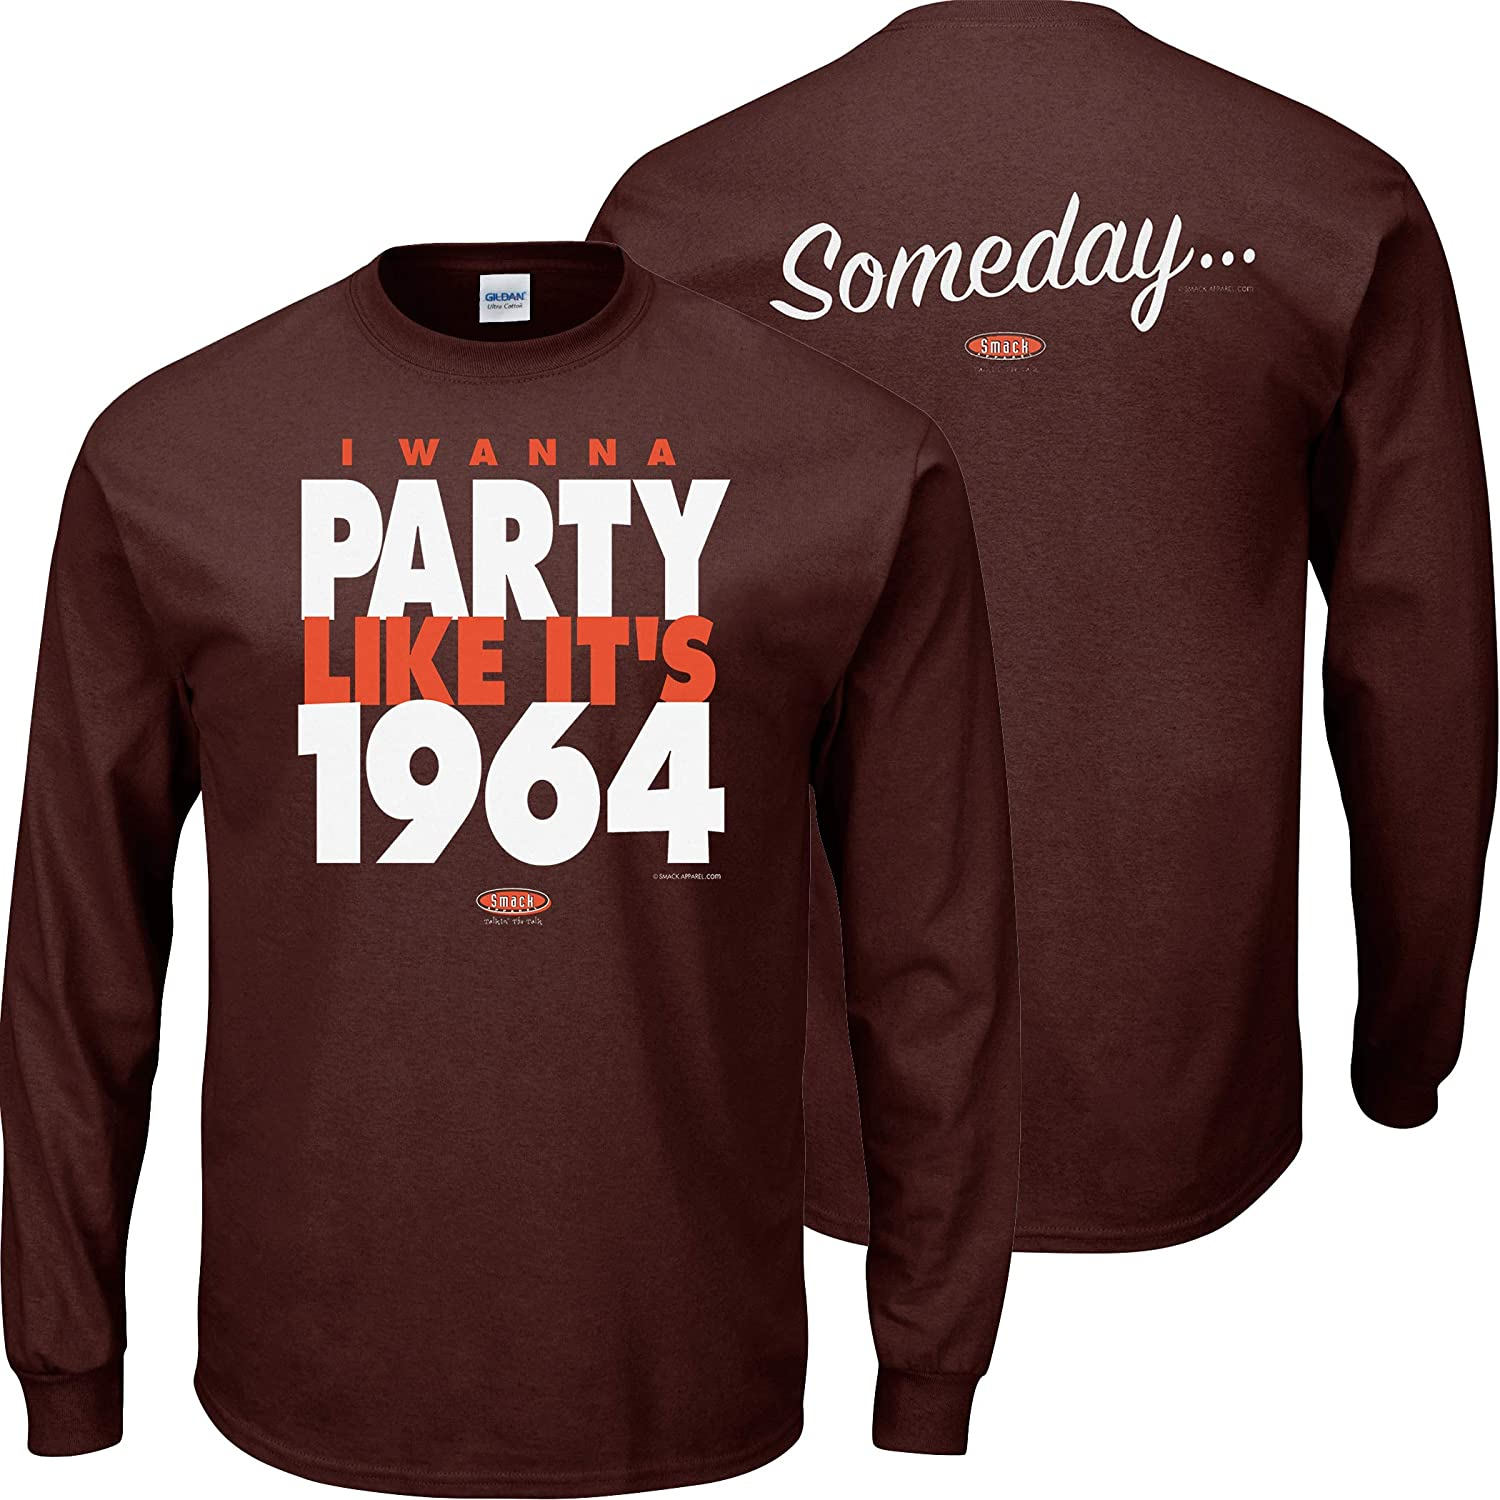 Someday/… I Wanna Party Like Its 1964 Brown T-Shirt Sm-5X Smack Apparel Cleveland Football Fans